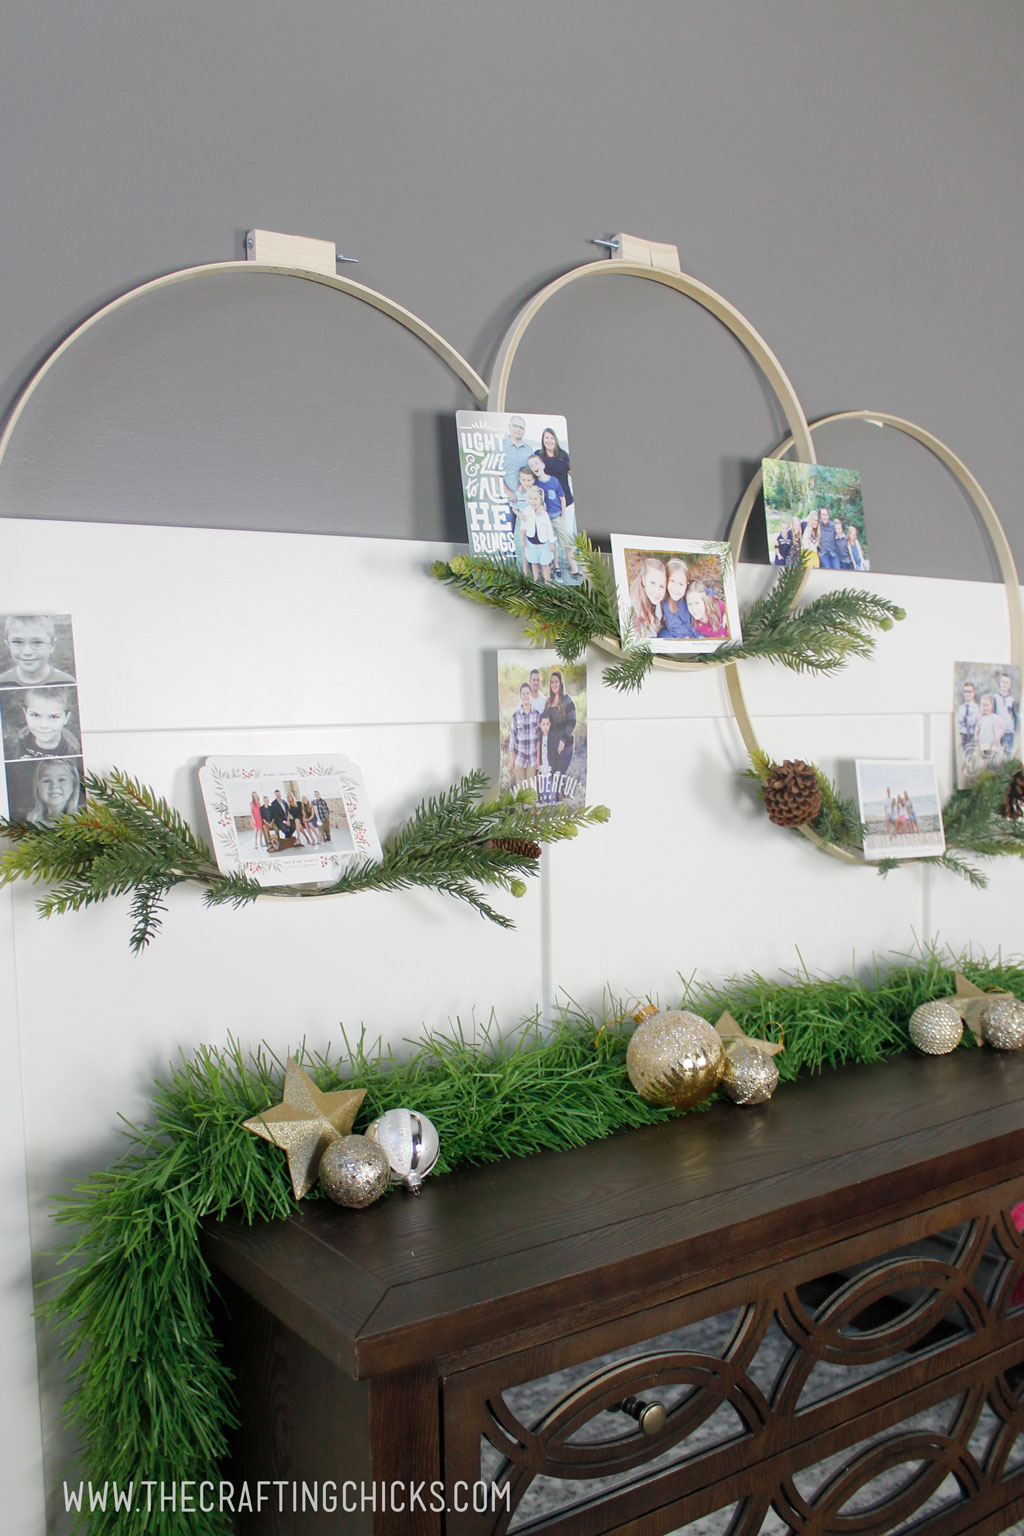 Embroidery hoop wreaths with faux pine hanging on a wall and decorated with Christmas cards